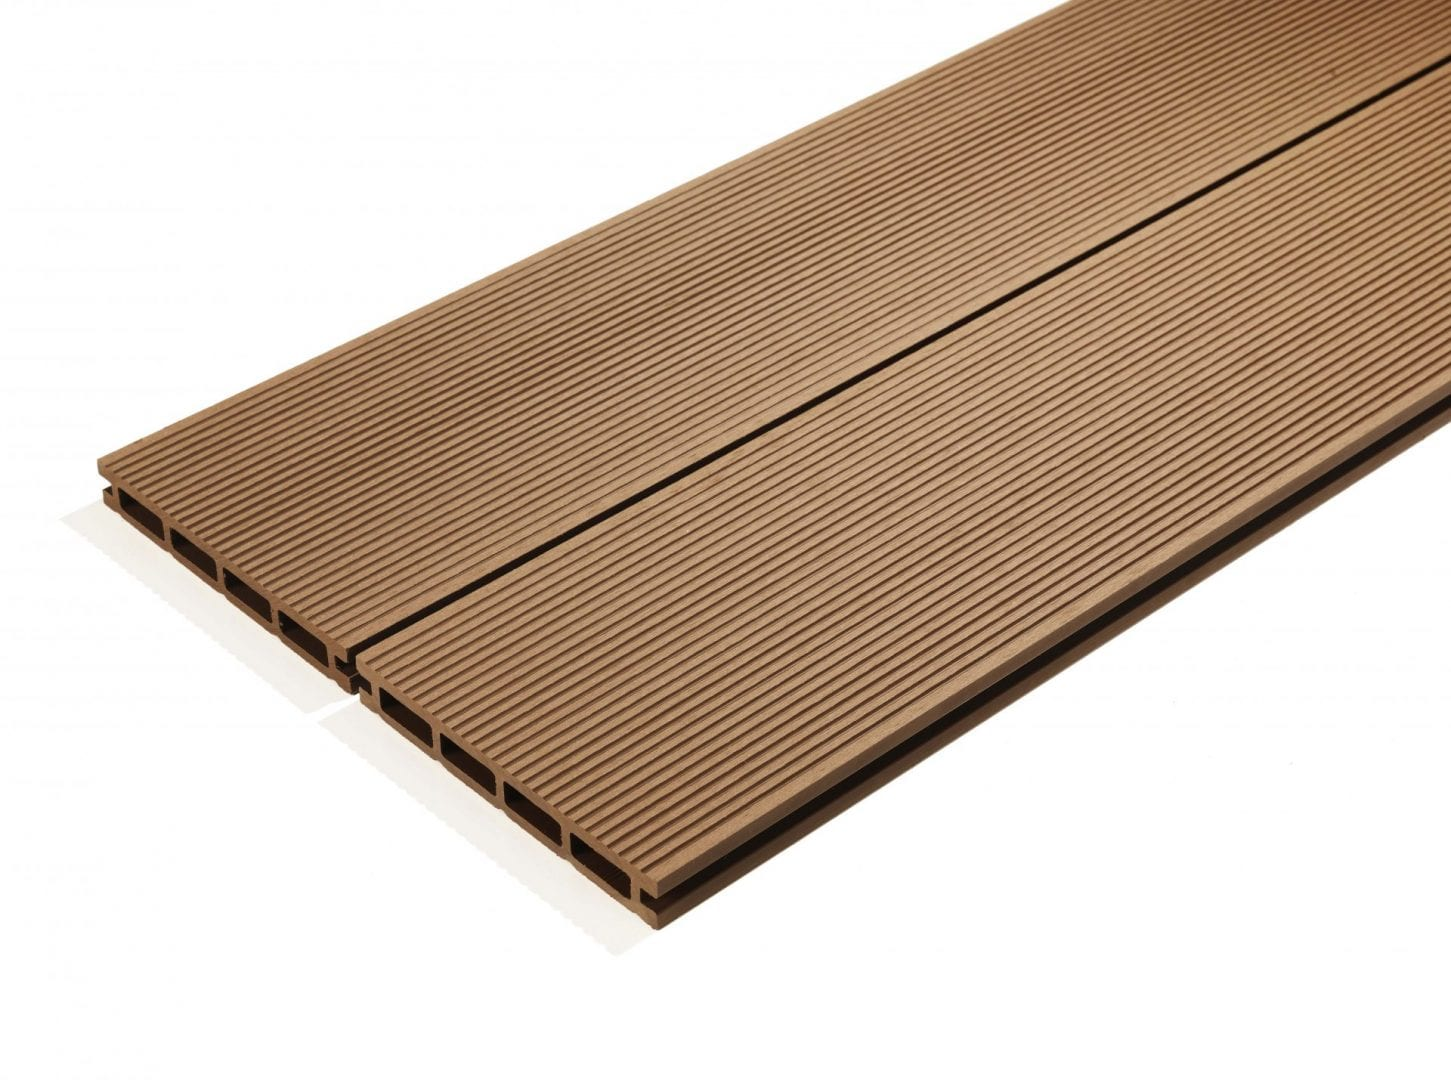 4m Composite Decking Boards Walnut Brown